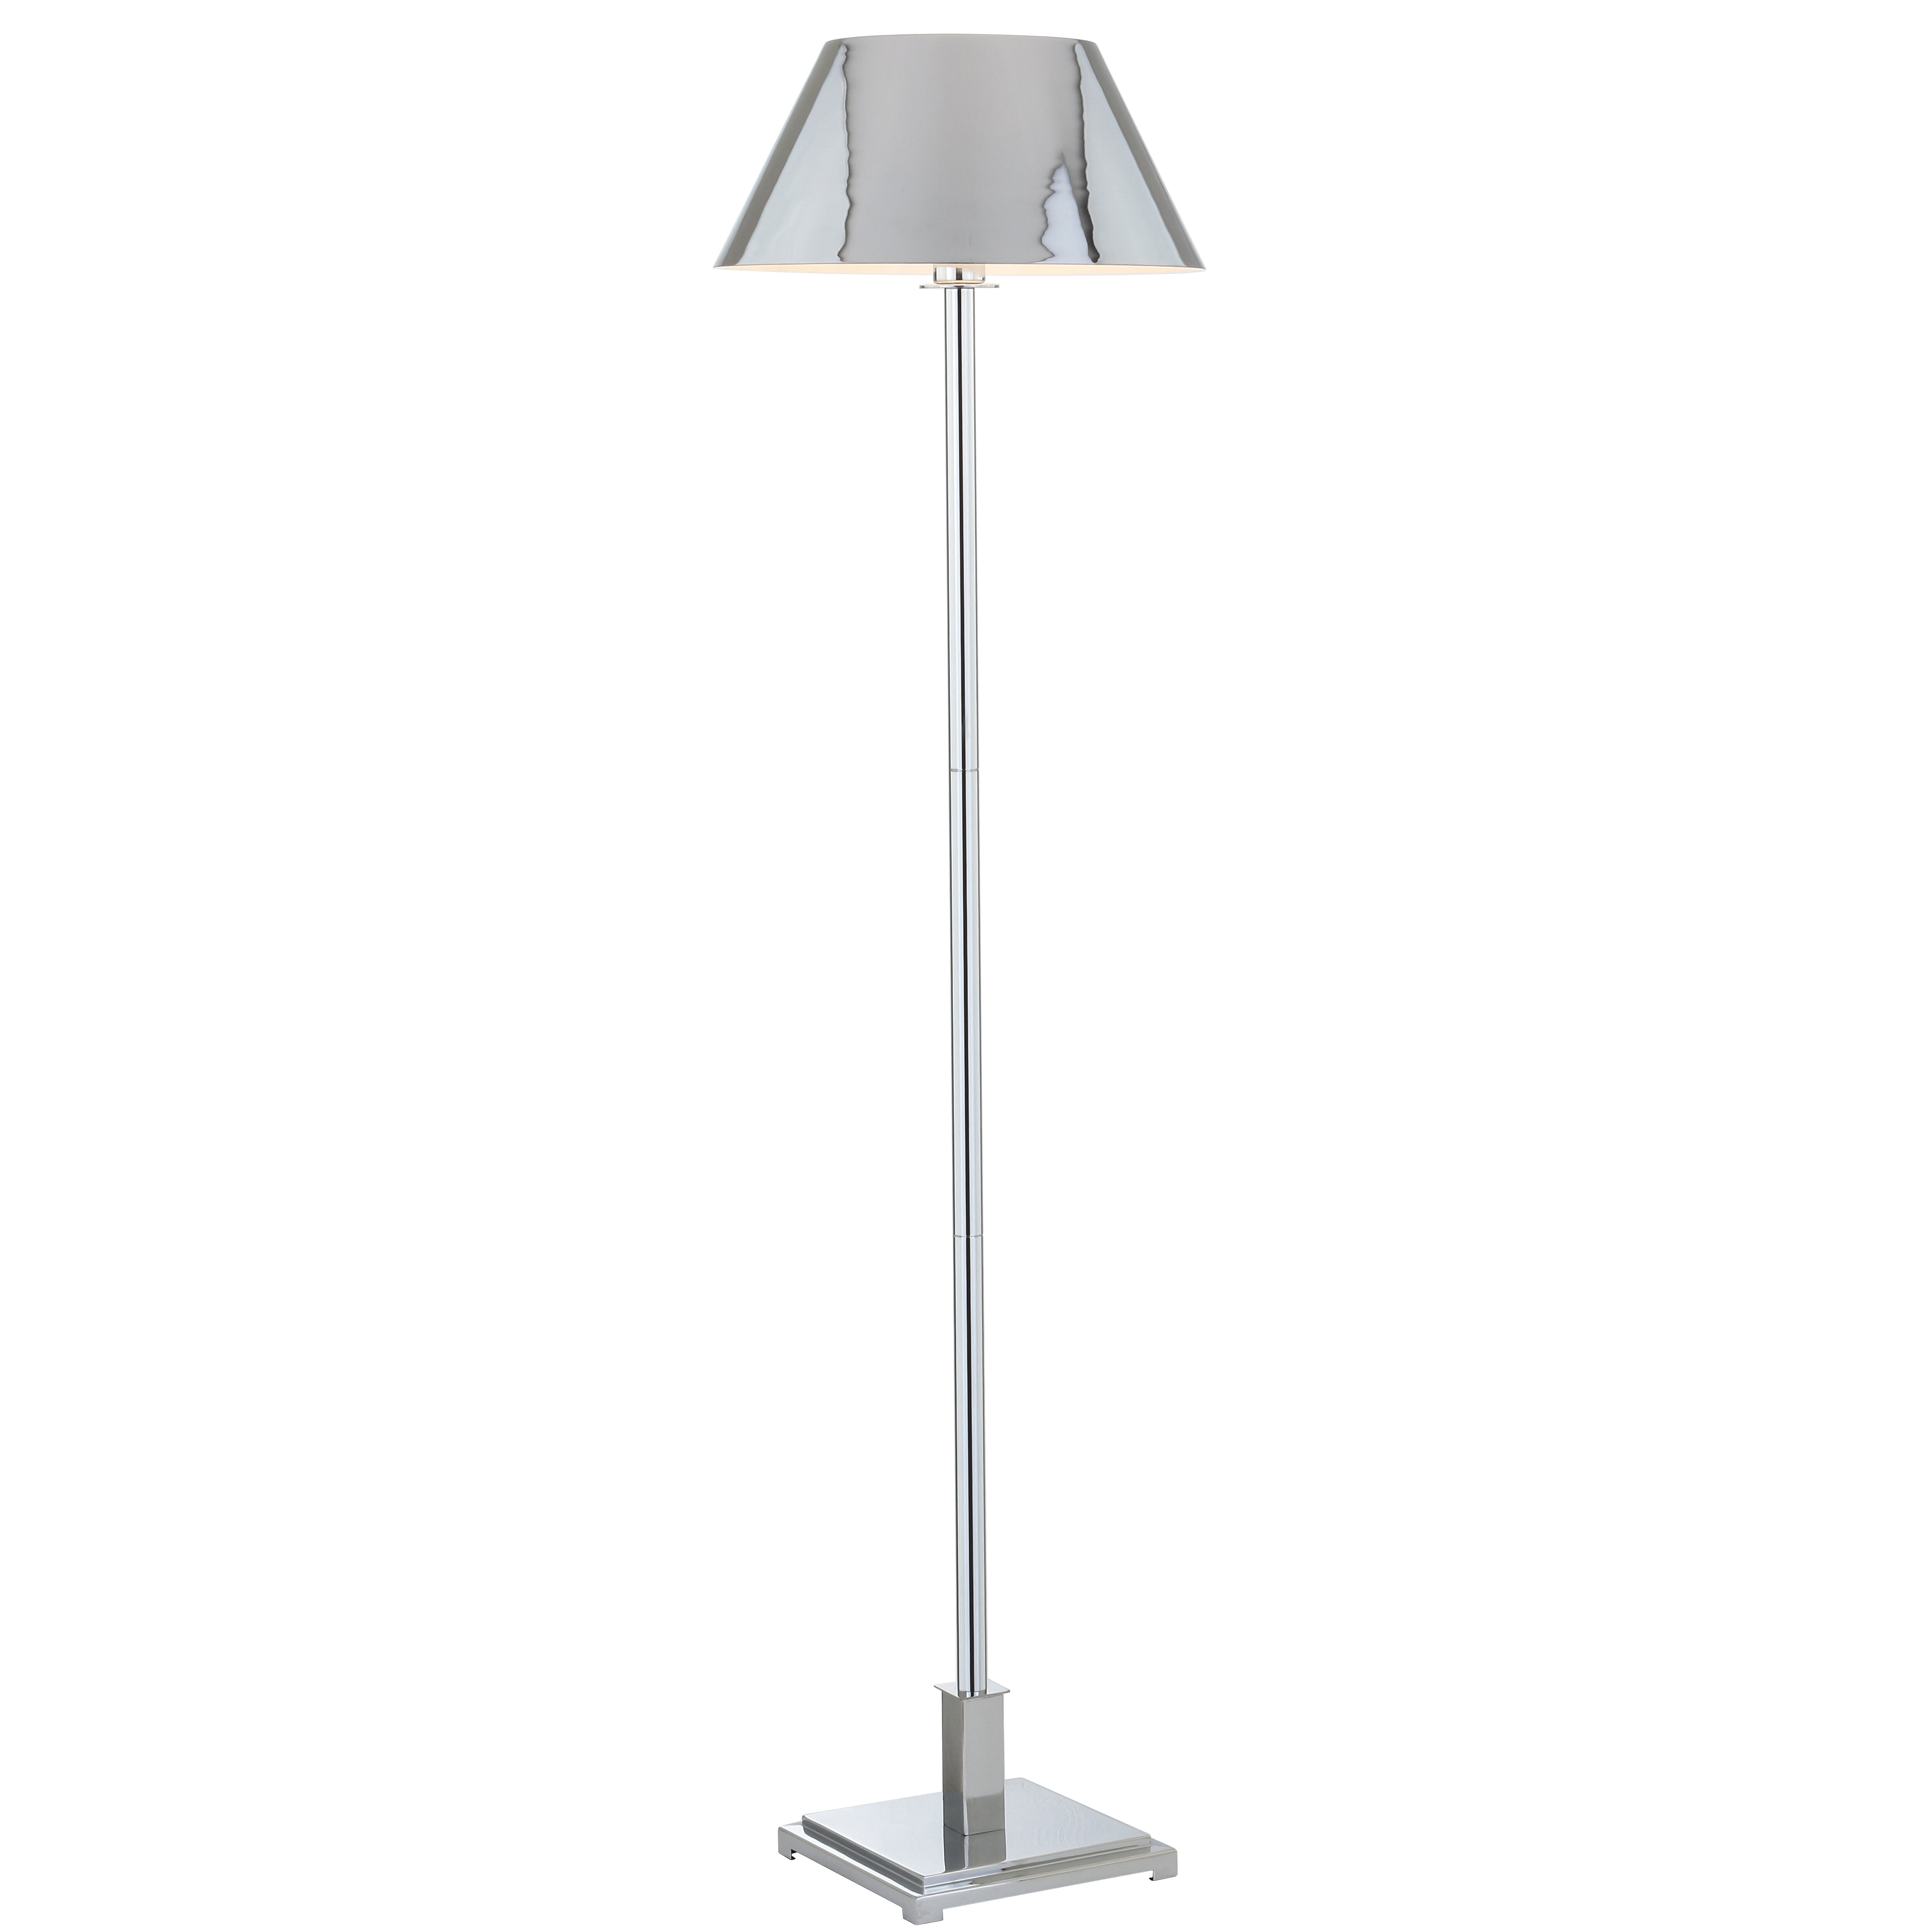 Filkins 152cm Floor Lamp